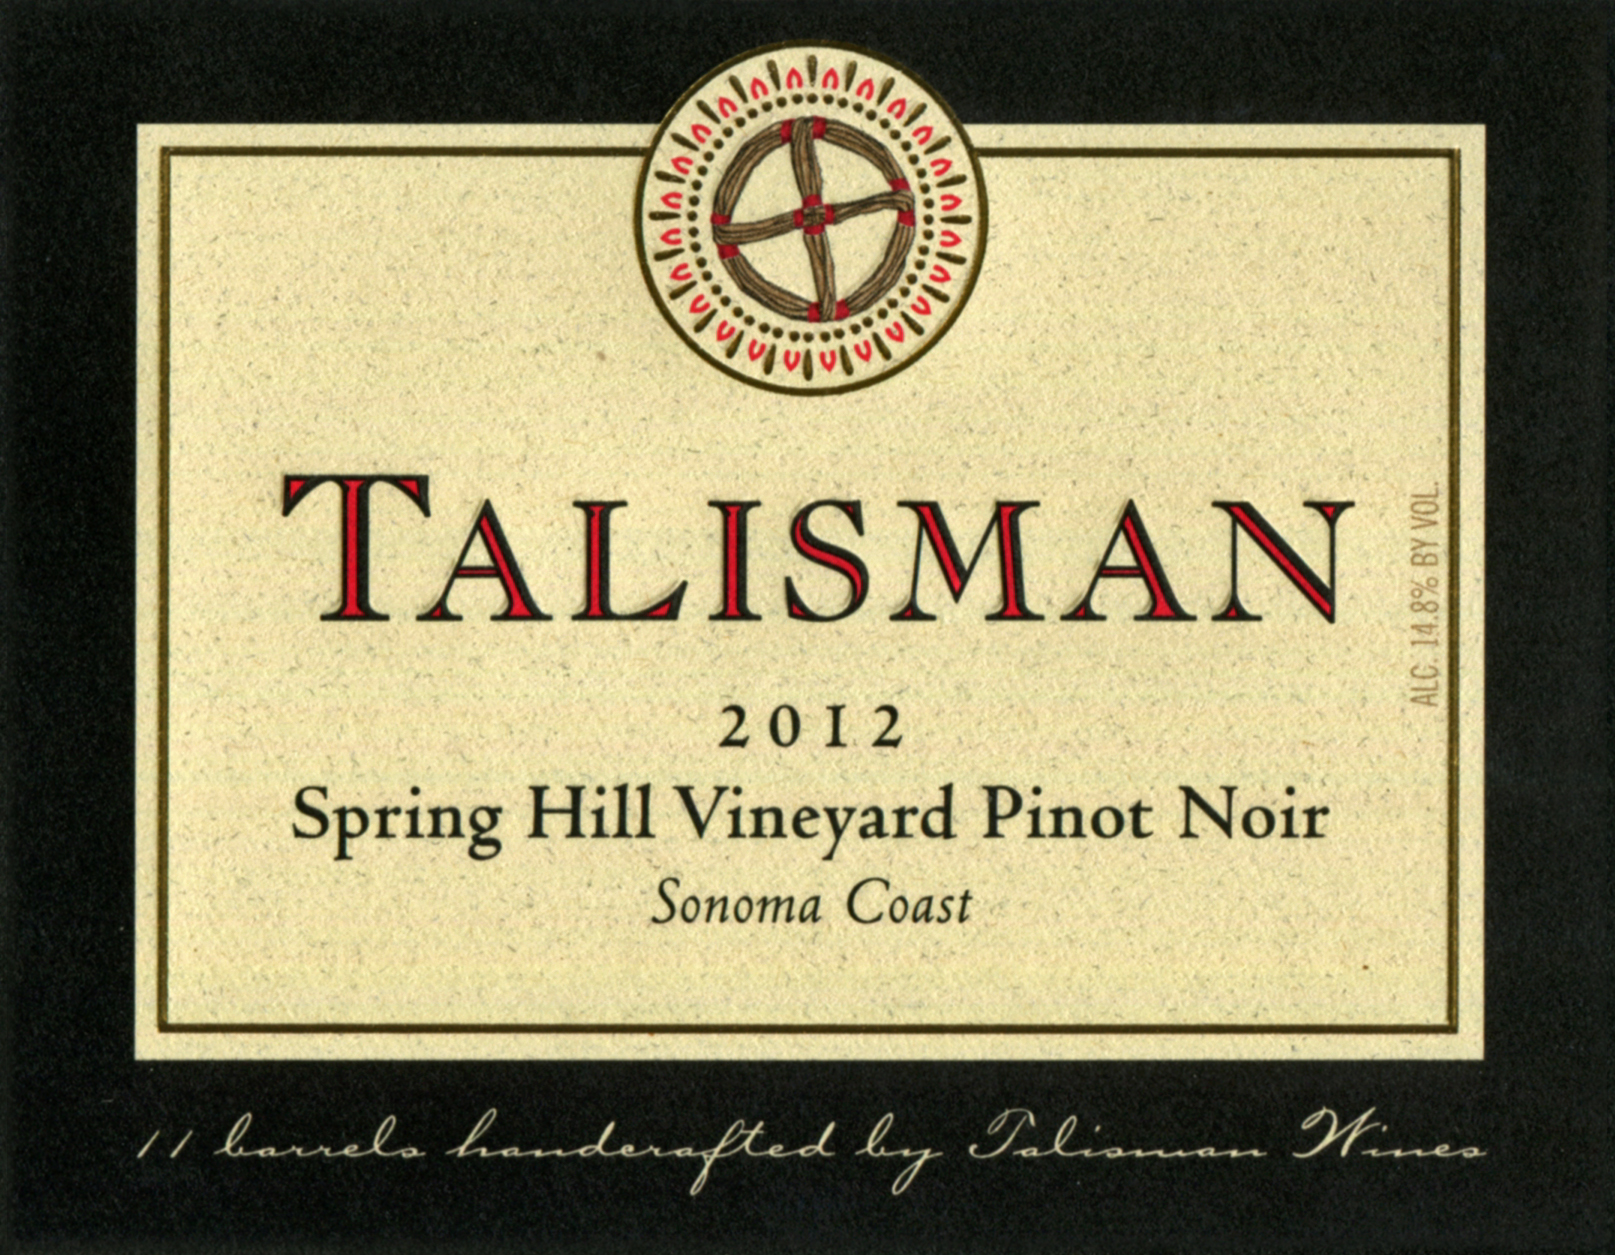 Product Image for 2012 Spring Hill Vineyard Pinot Noir 3L